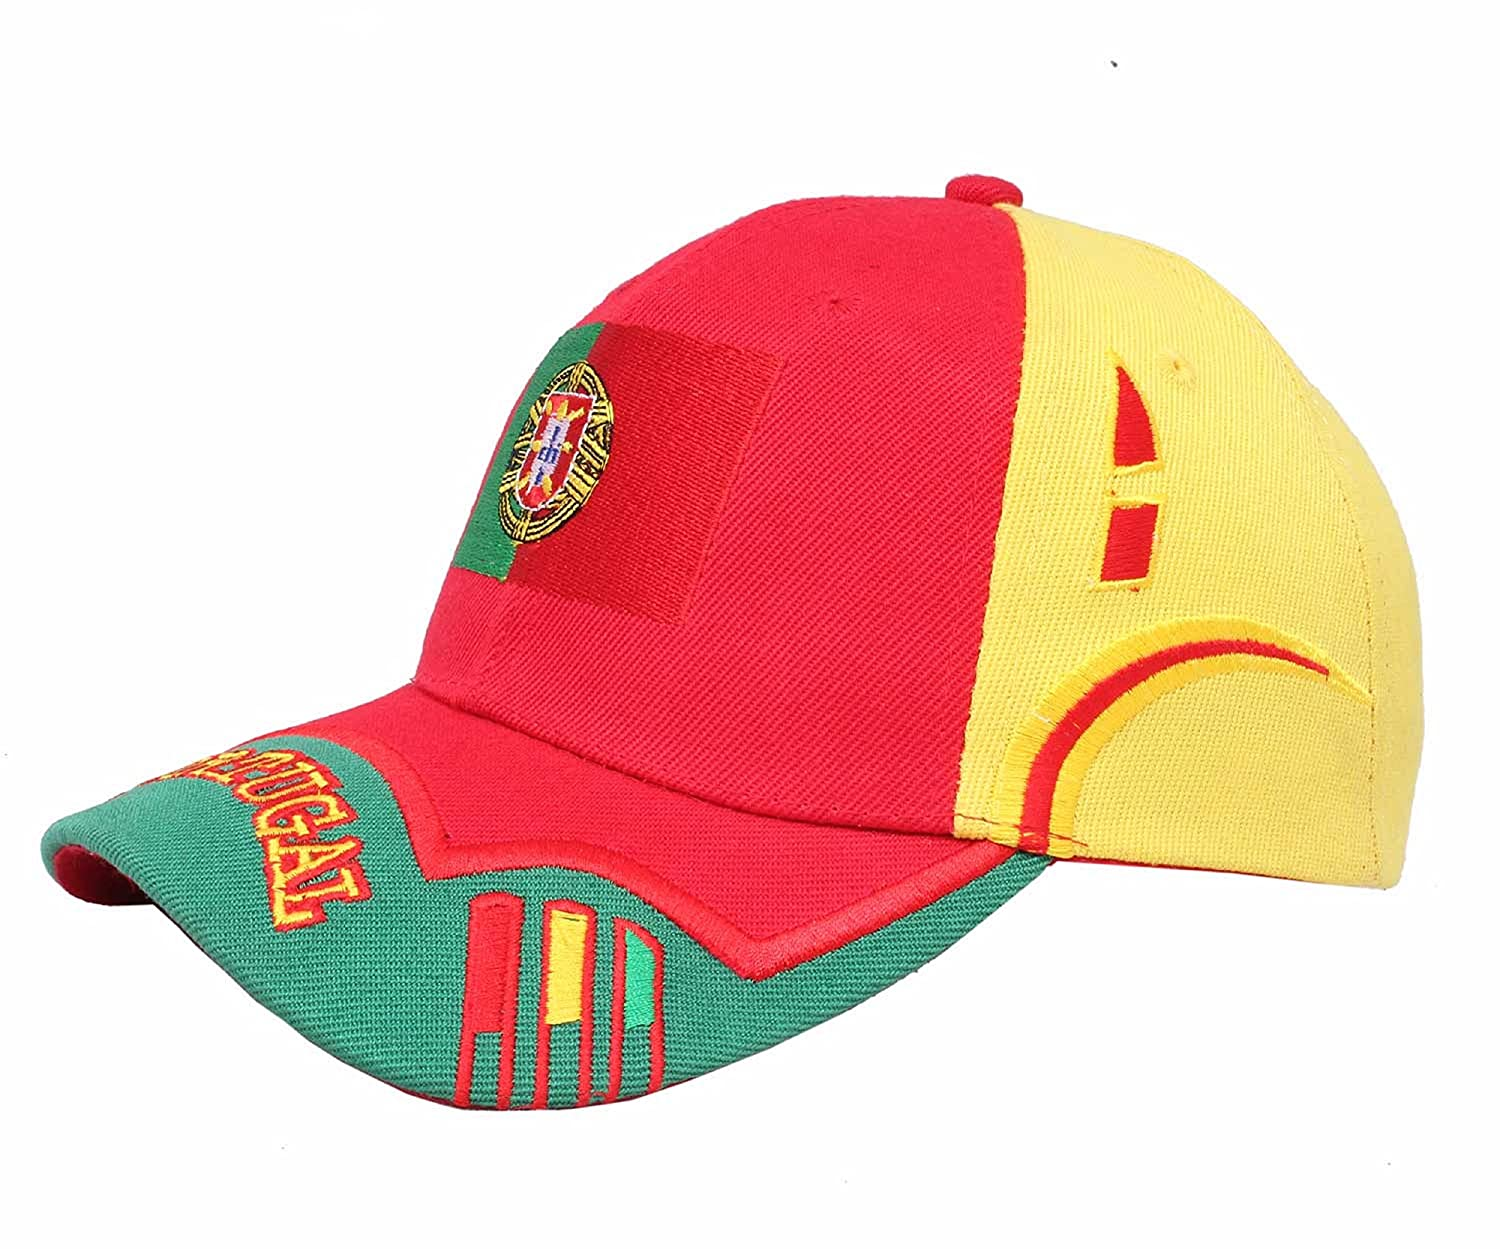 07a9bd8cb45 Buy Sushito Stylish Summer Baseball Cap Online at Low Prices in India -  Amazon.in